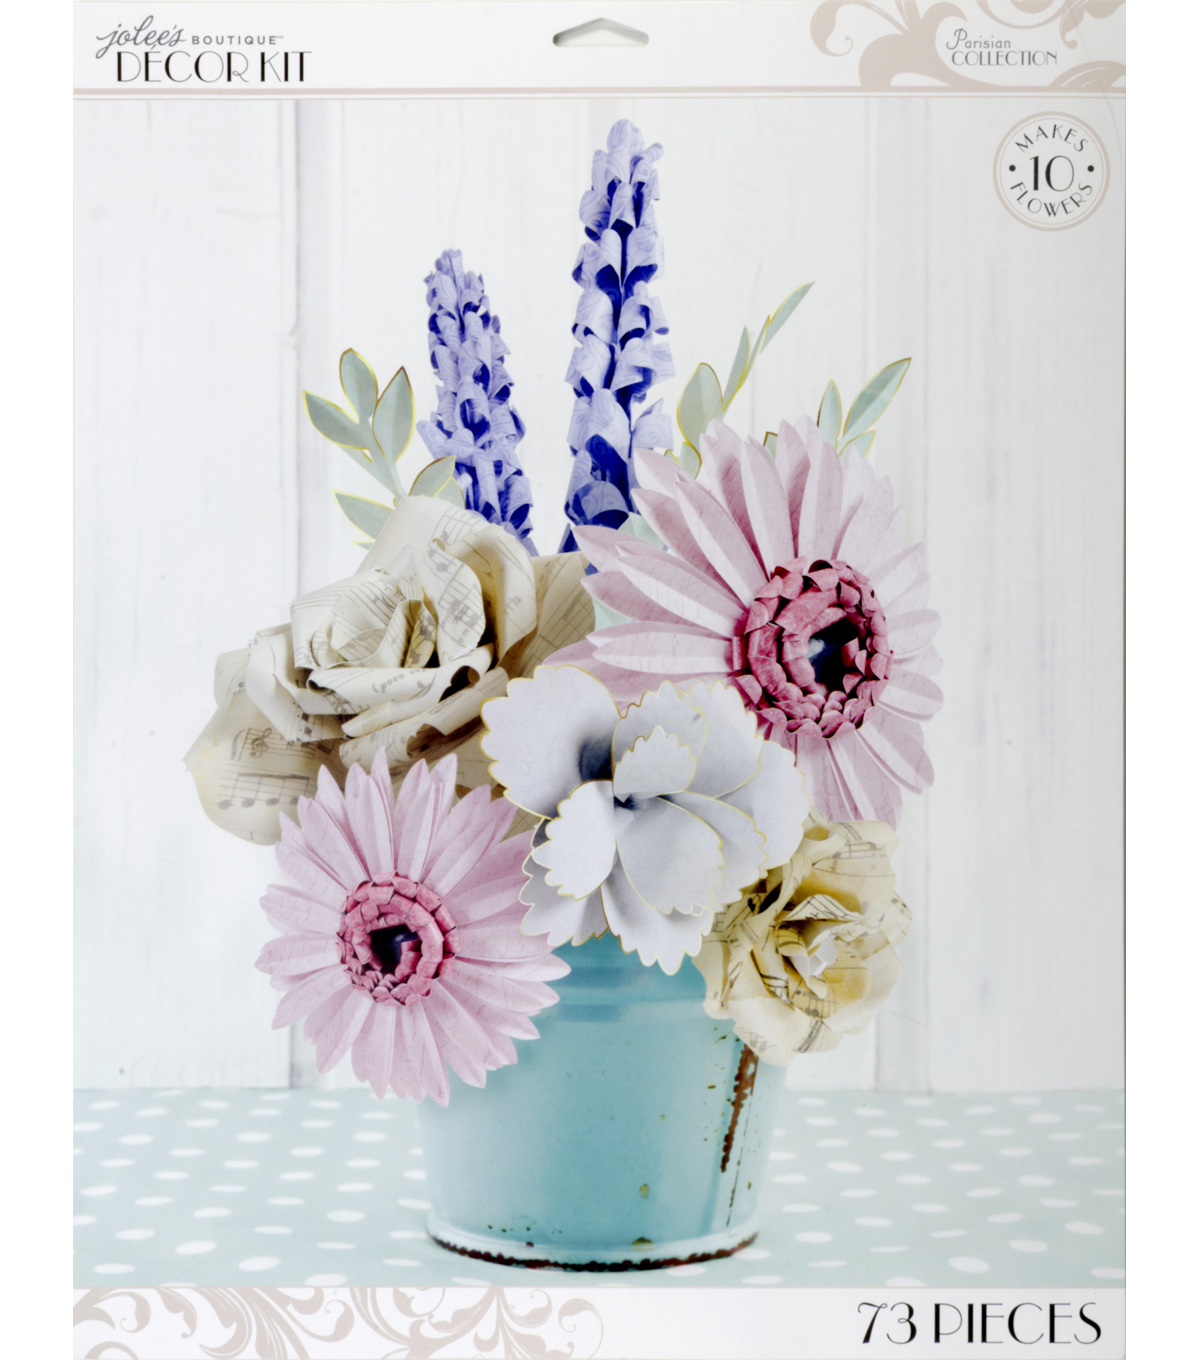 Jolee\u0027s Boutique Parisian Large Paper Flowers Kit